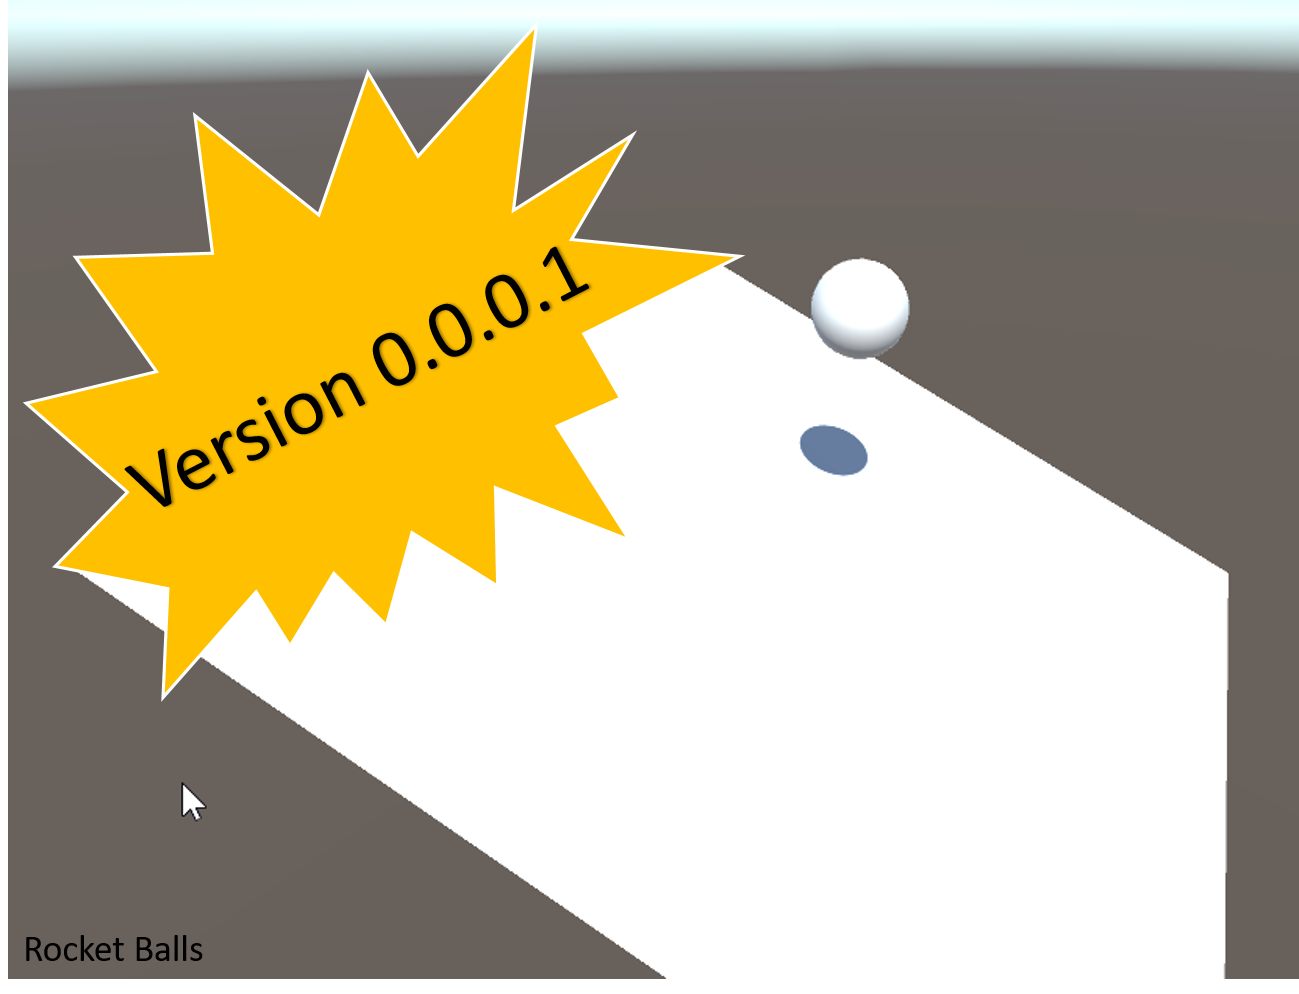 Rocket Balls Version 0.0.0.1